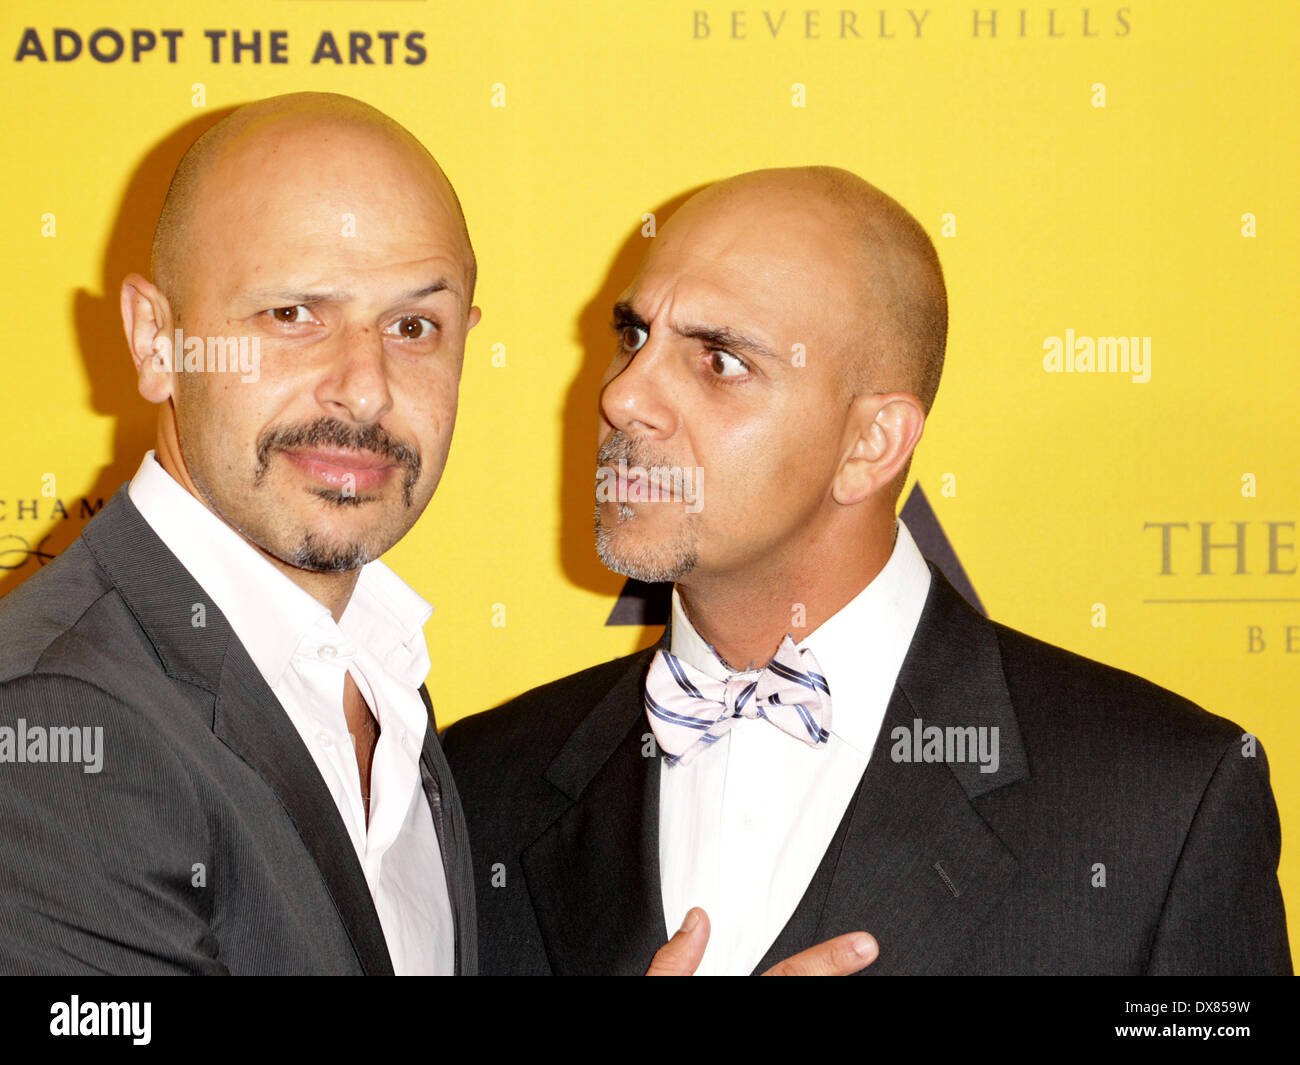 Guests 'Adopt The Arts' fundraiser for LAUSD elementary schools held at the Peninsula Hotel Los Angeles, California - 08.11.12 - Stock Image